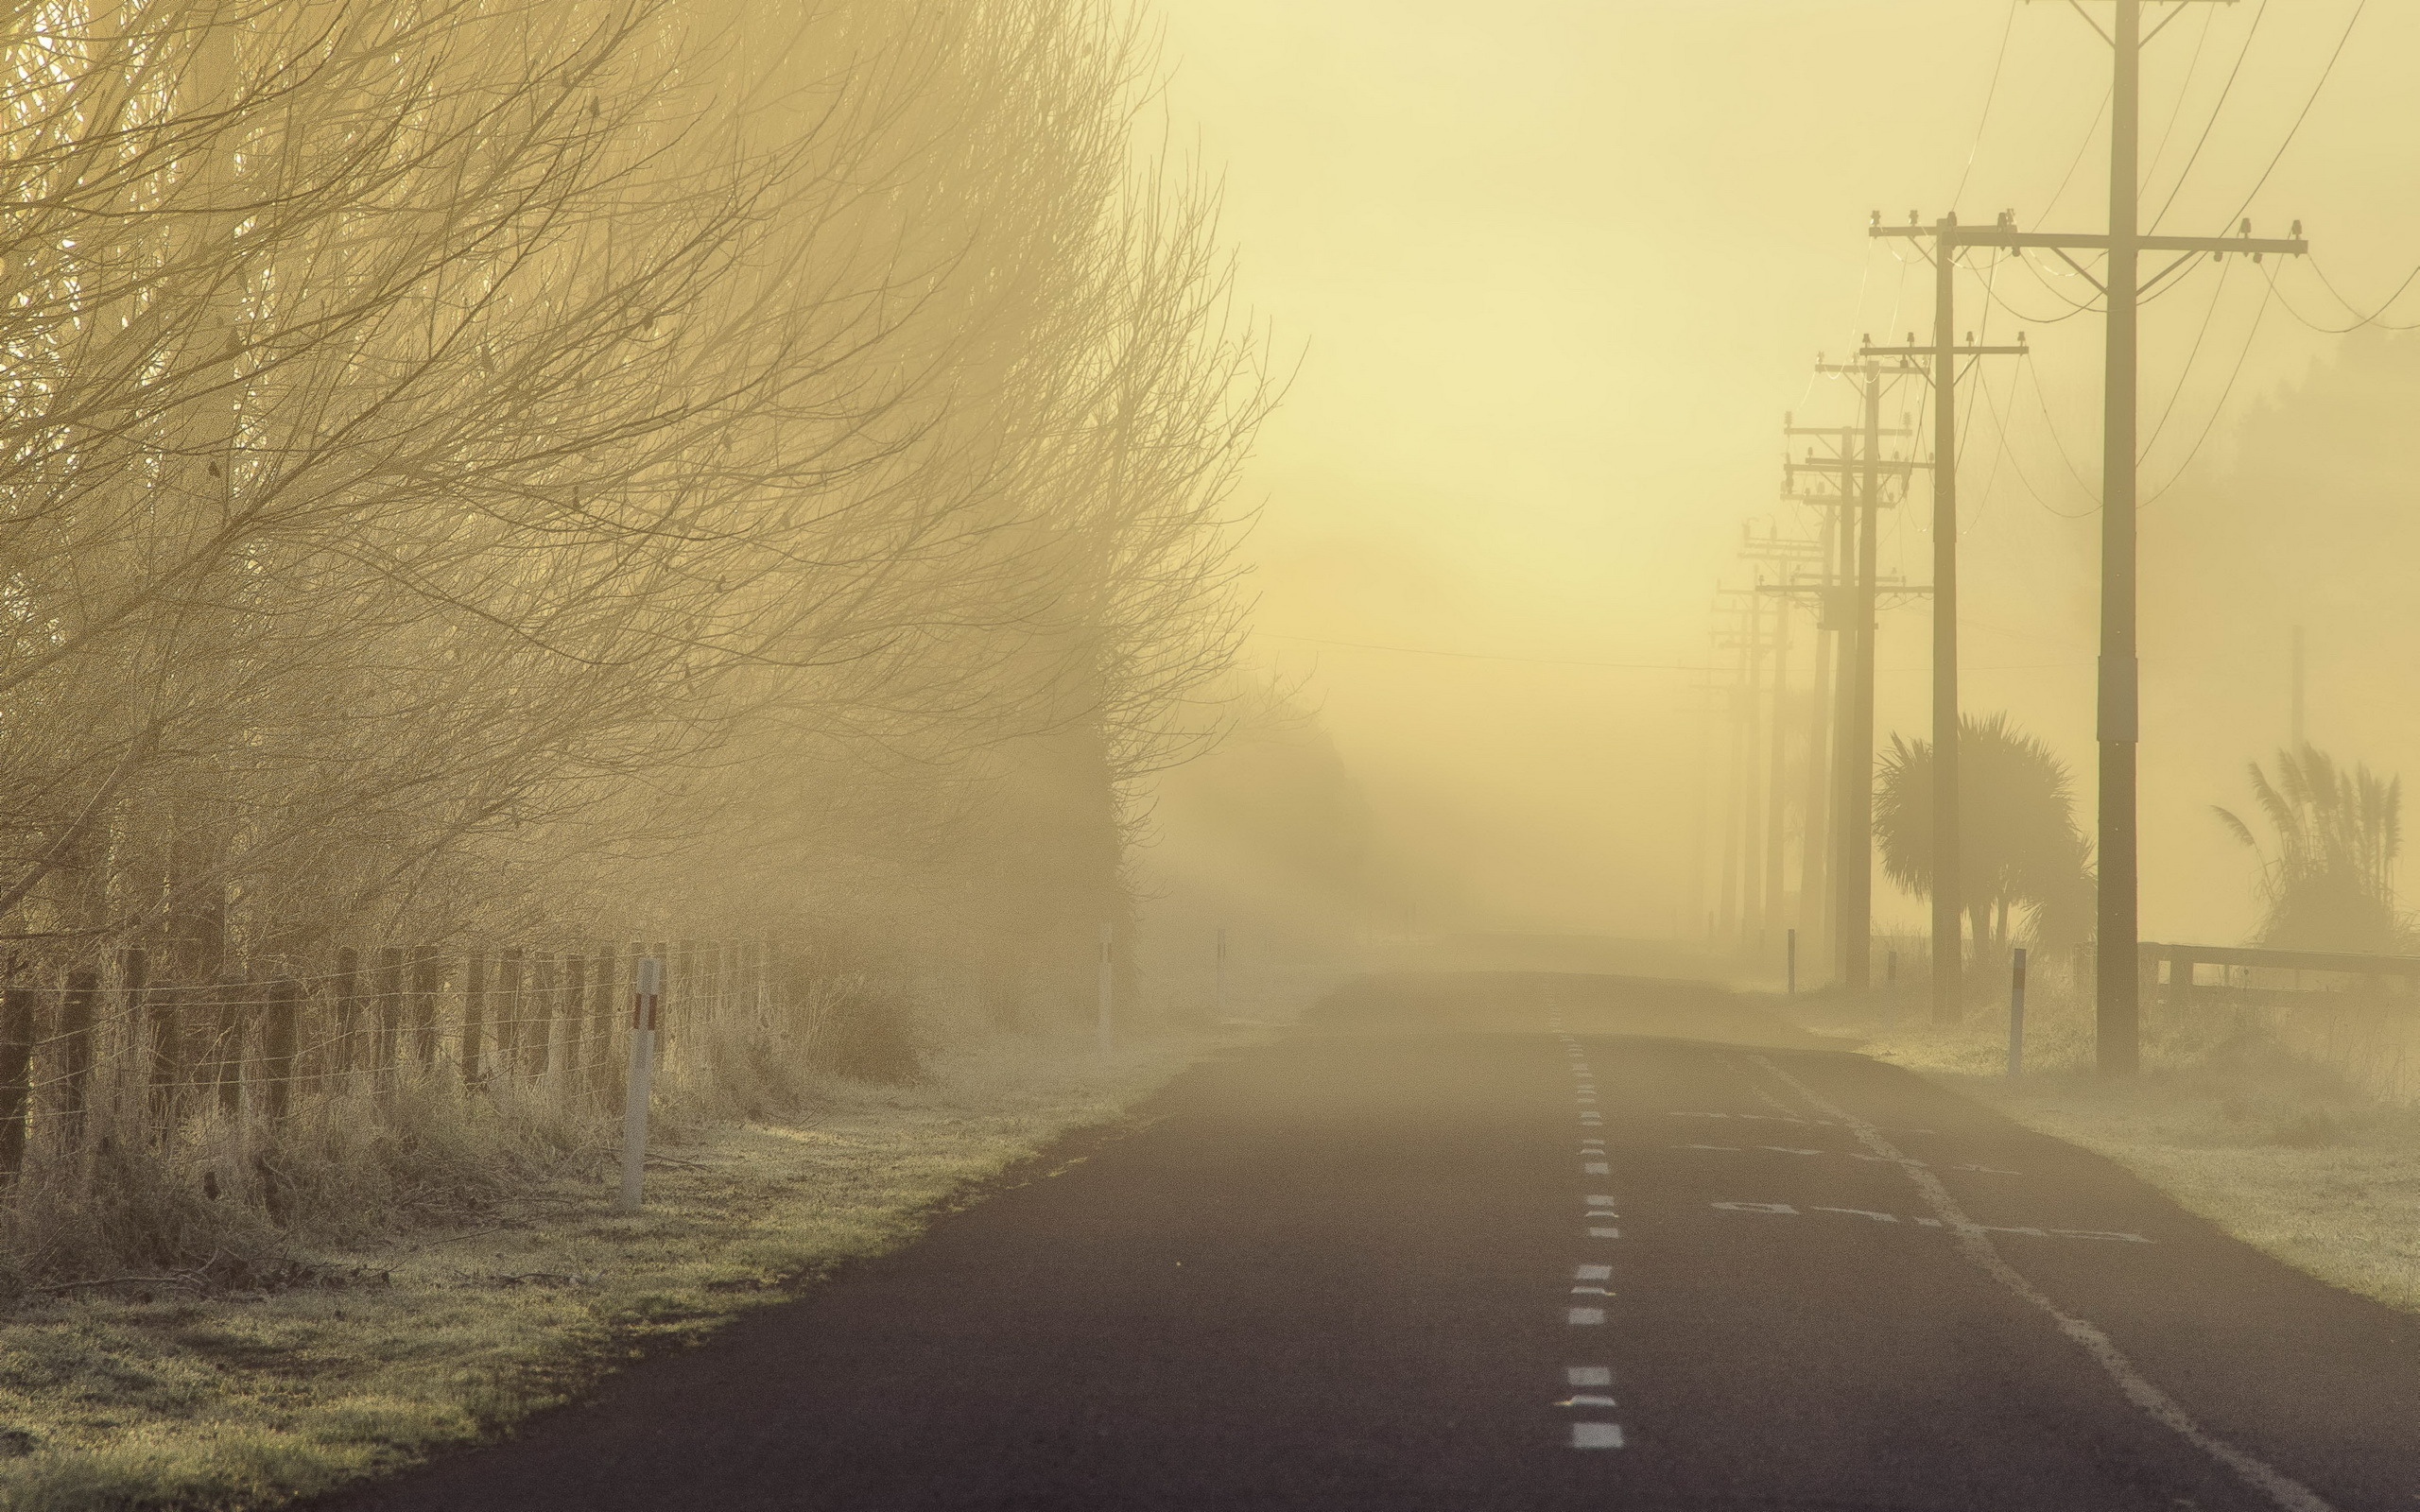 morning road fog landscape mood